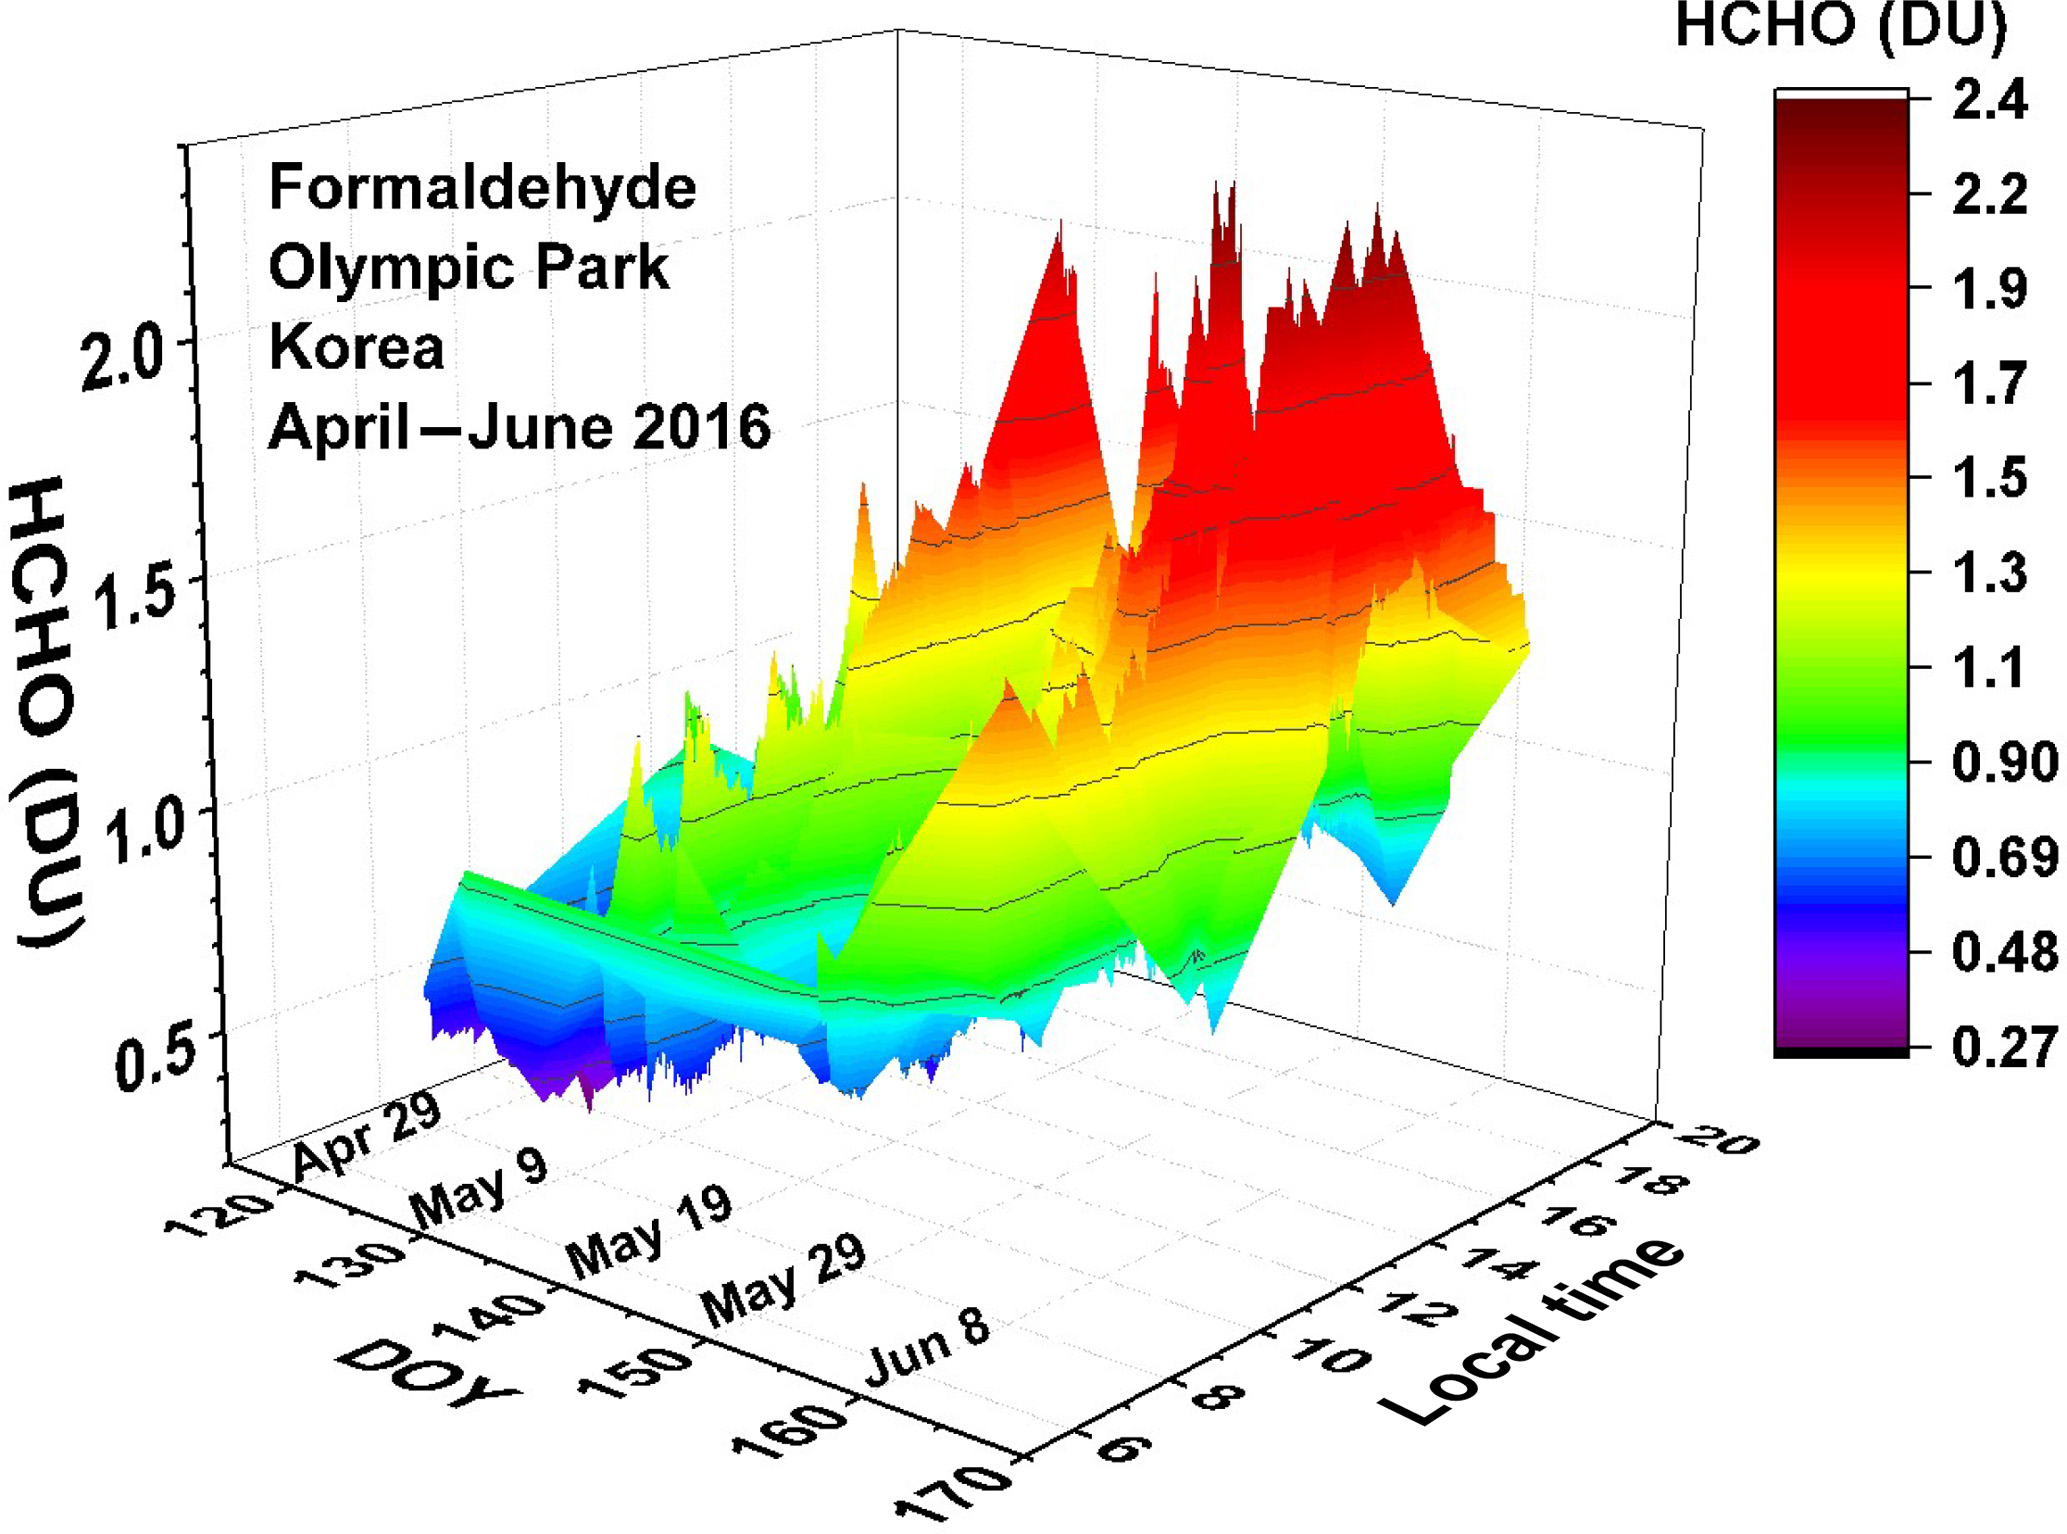 AMT - NO2 and HCHO measurements in Korea from 2012 to 2016 from